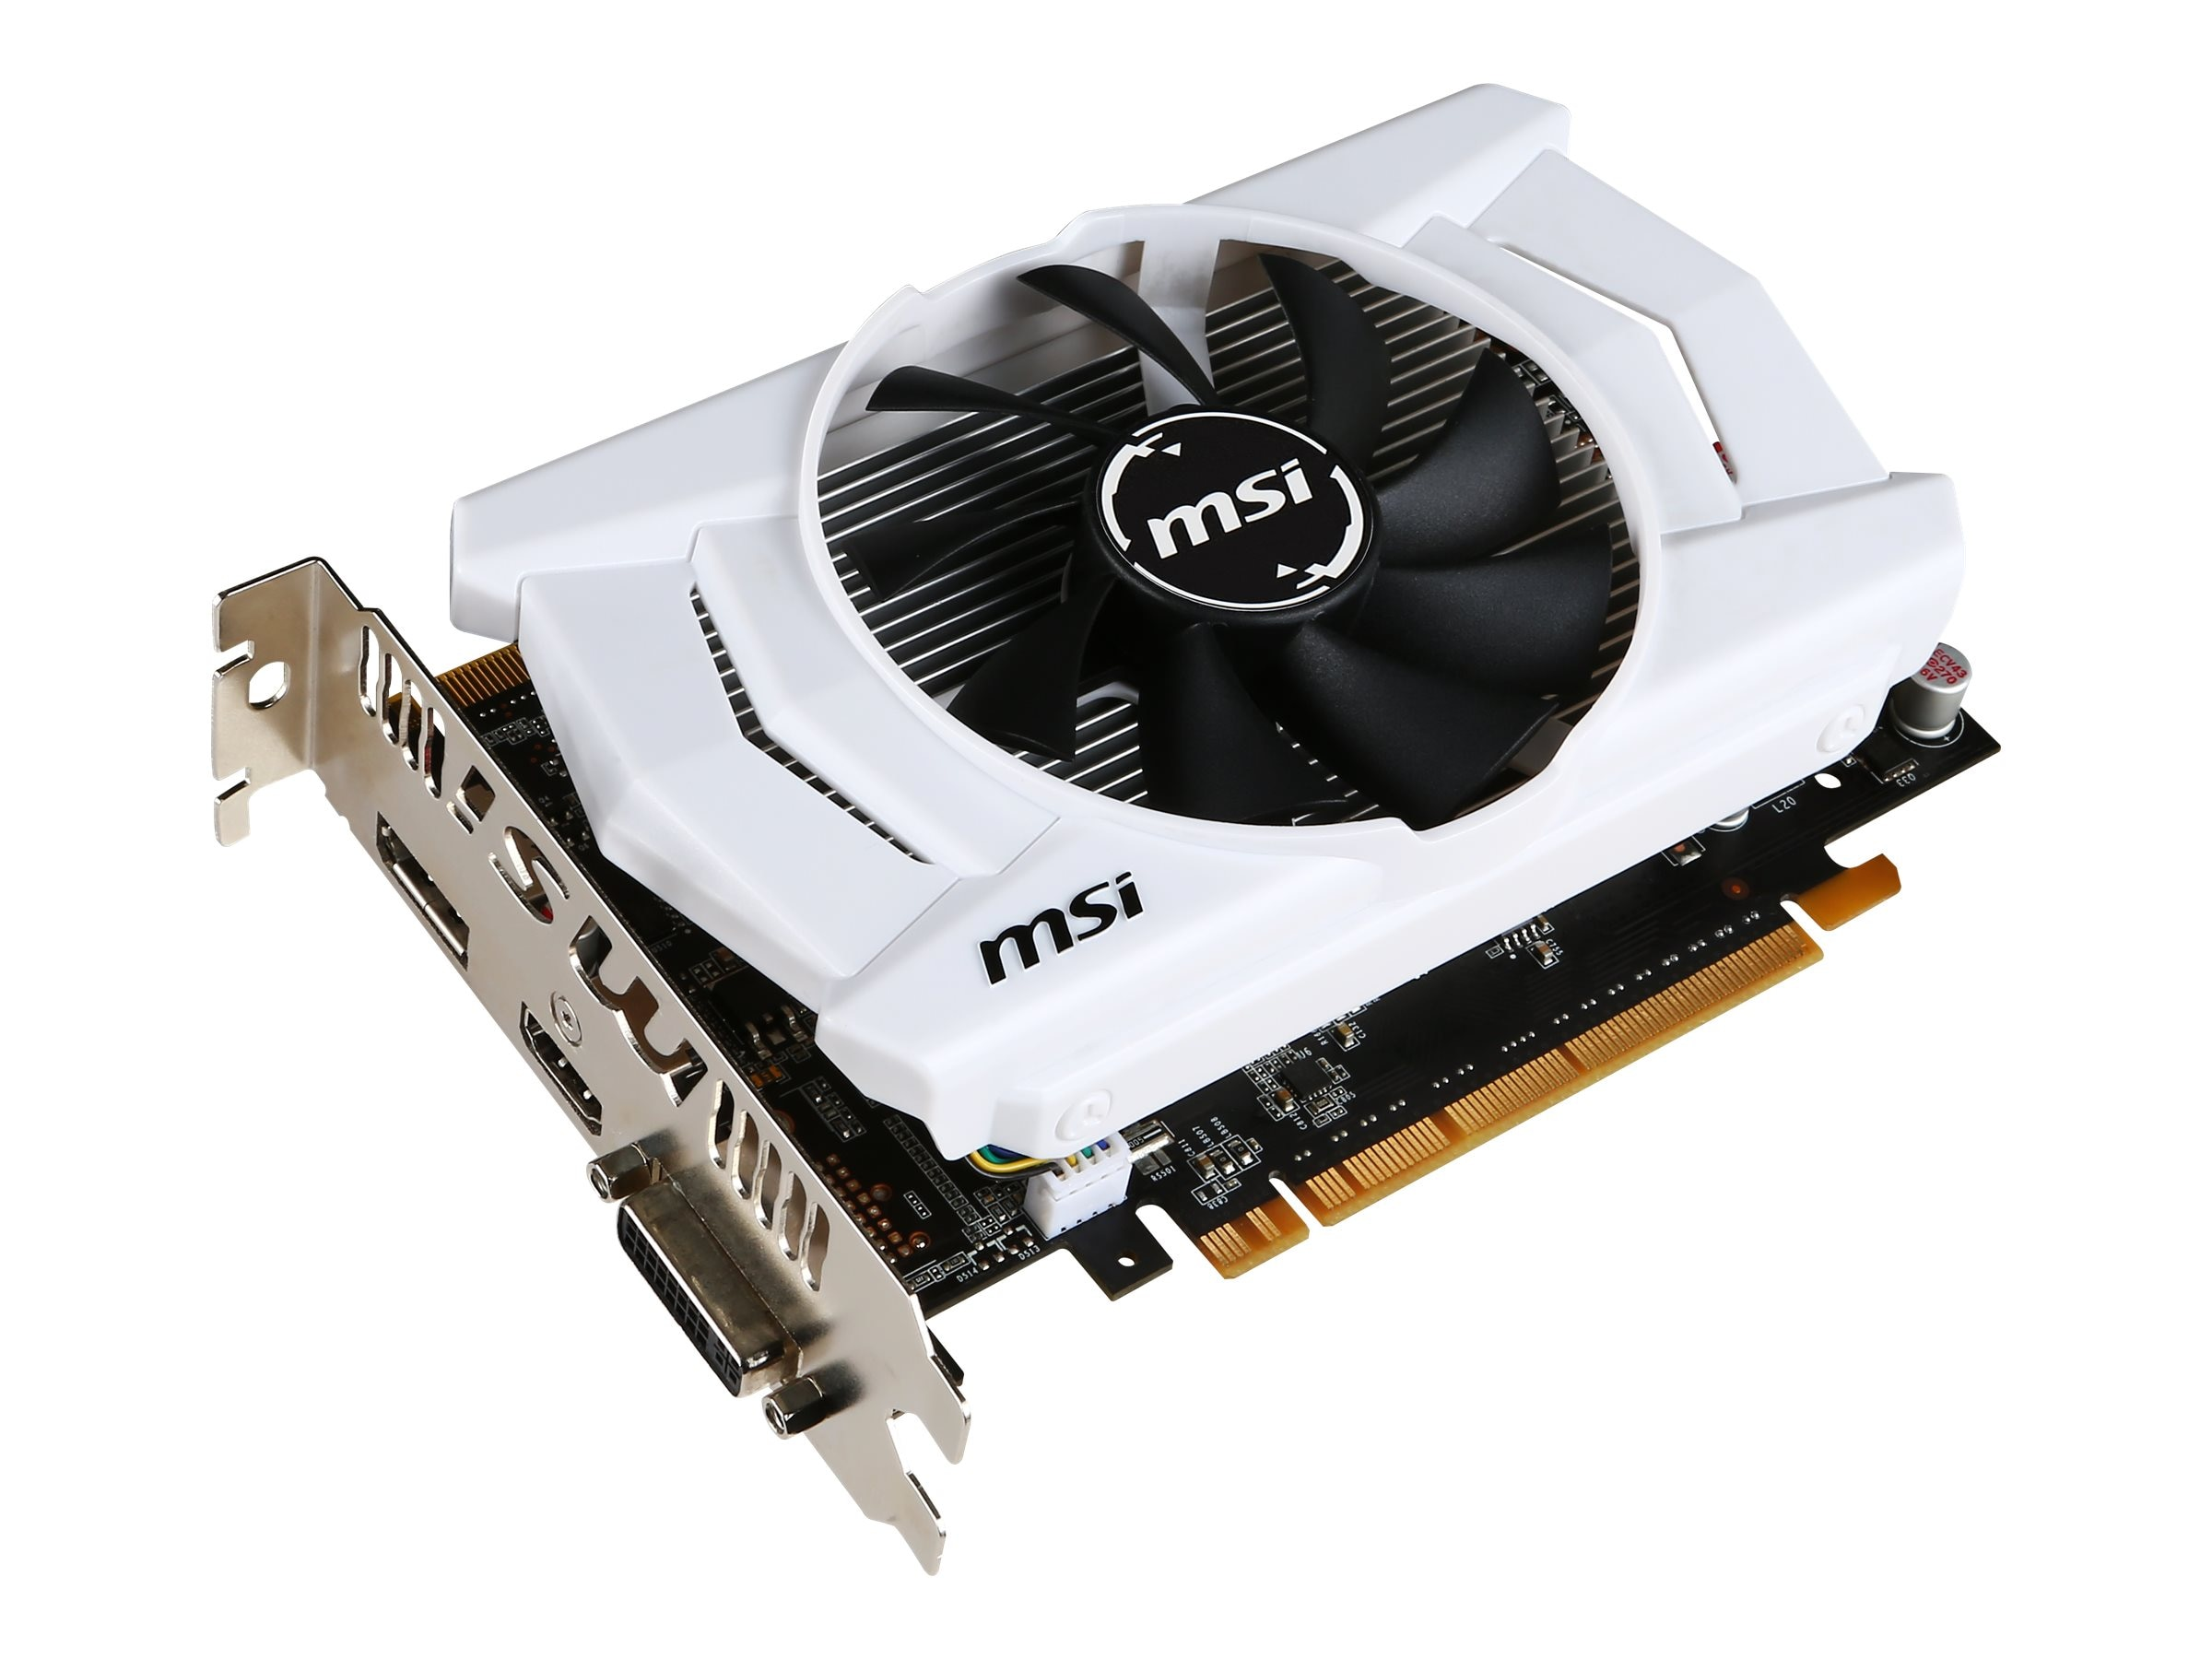 Microstar GeForce GTX 950 PCIe 3.0 x16 Graphics Card, 2GB GDDR5, GTX 950 2GD5 OCV2